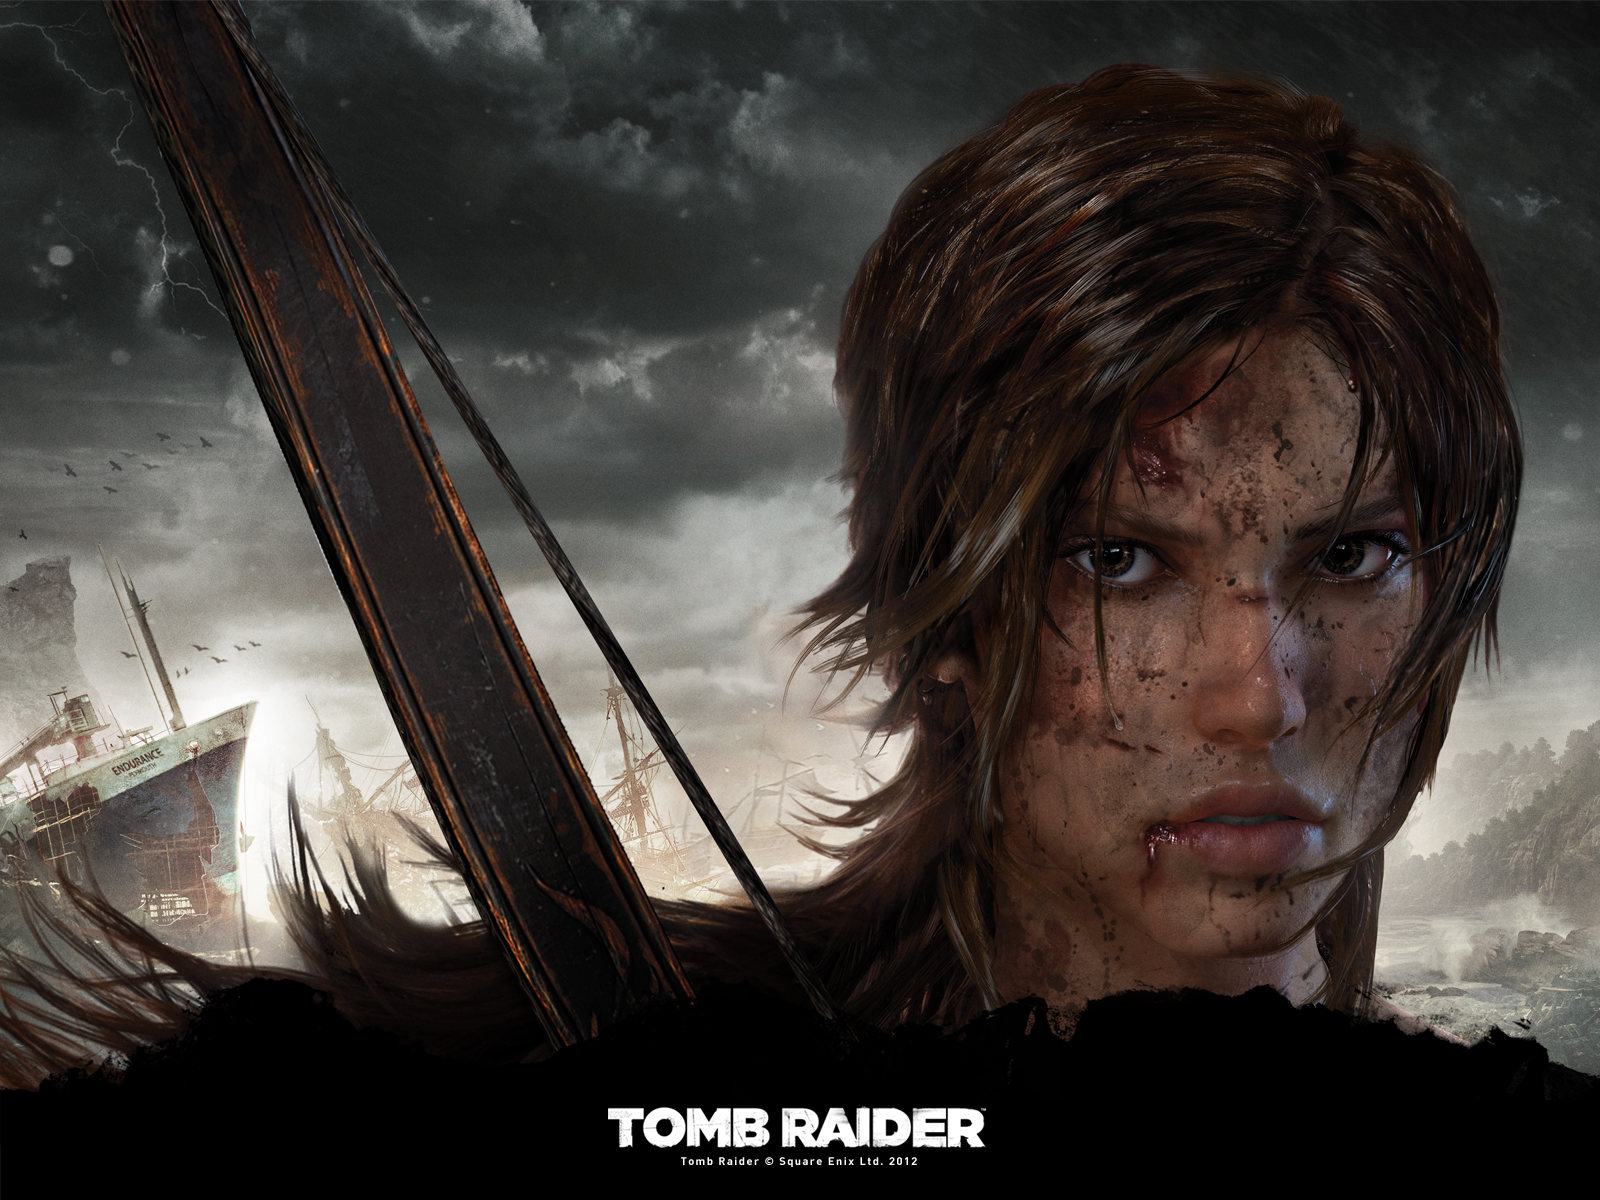 Tomb Raider: Guía de supervivencia (Trailer)